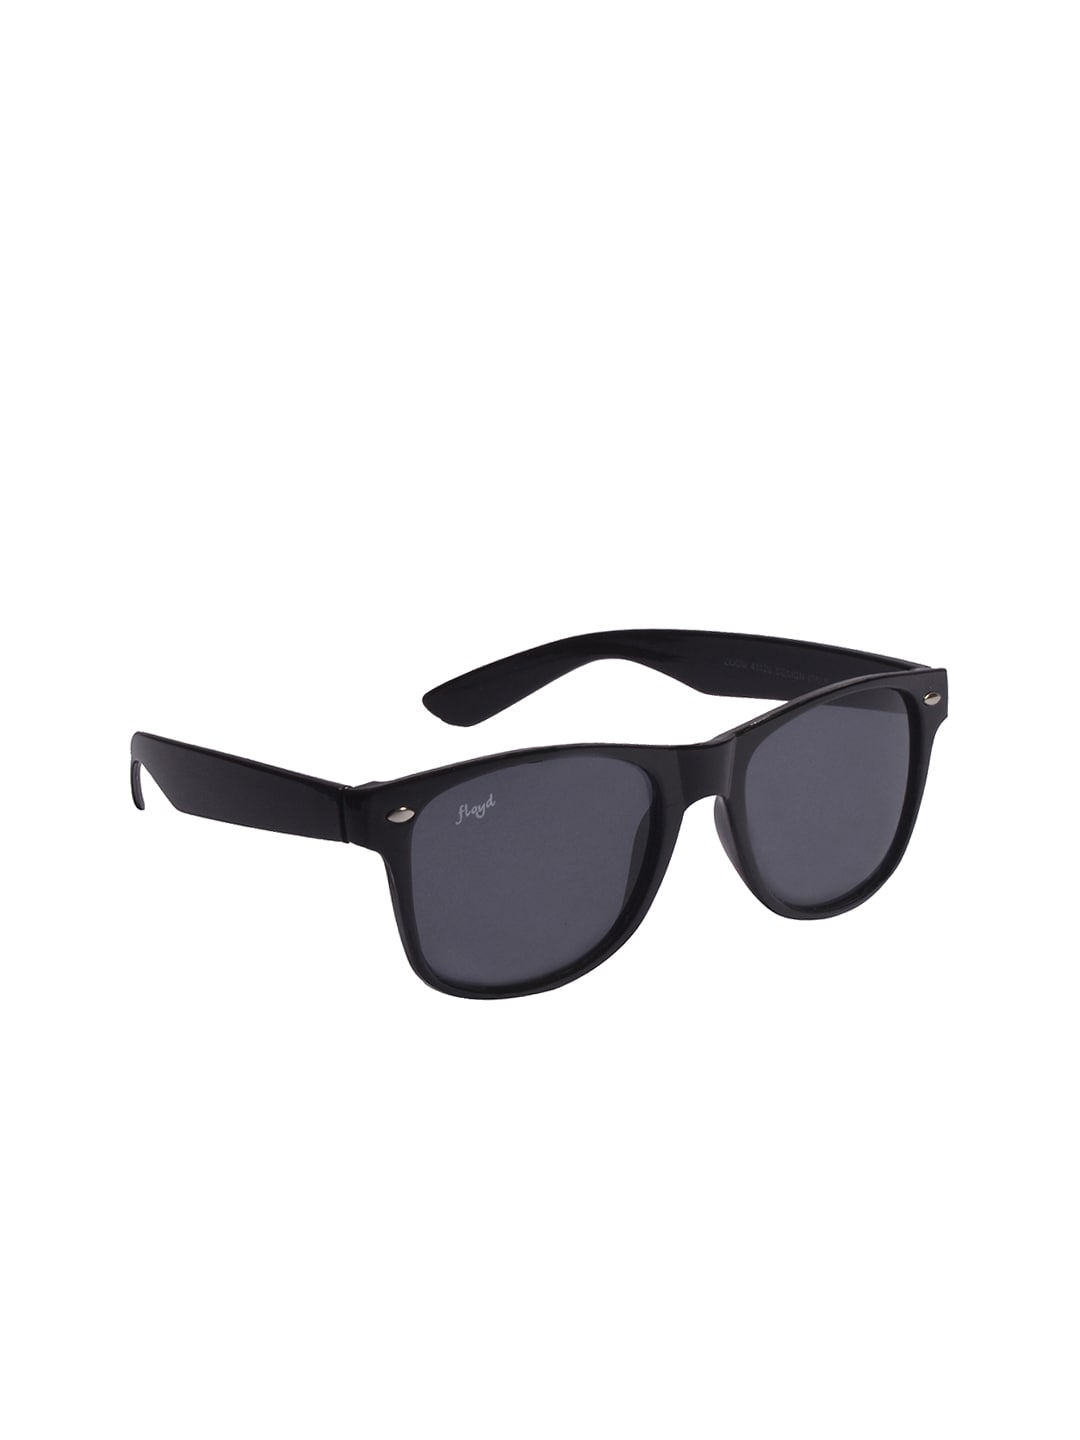 2971962c66 Sunglasses For Women - Buy Womens Sunglasses Online